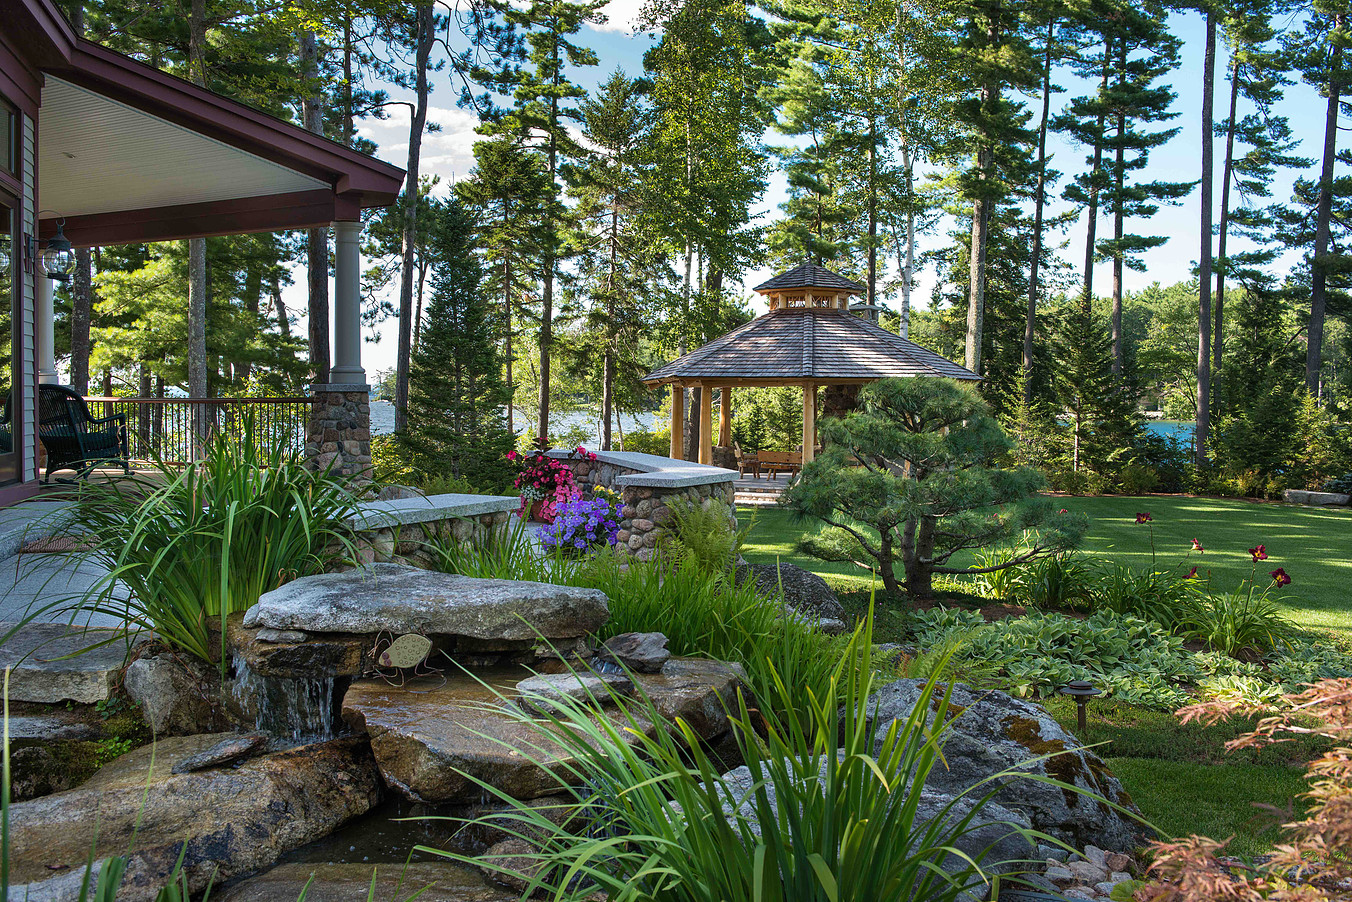 Landscape Architect: Pellettieri Associates, Inc.